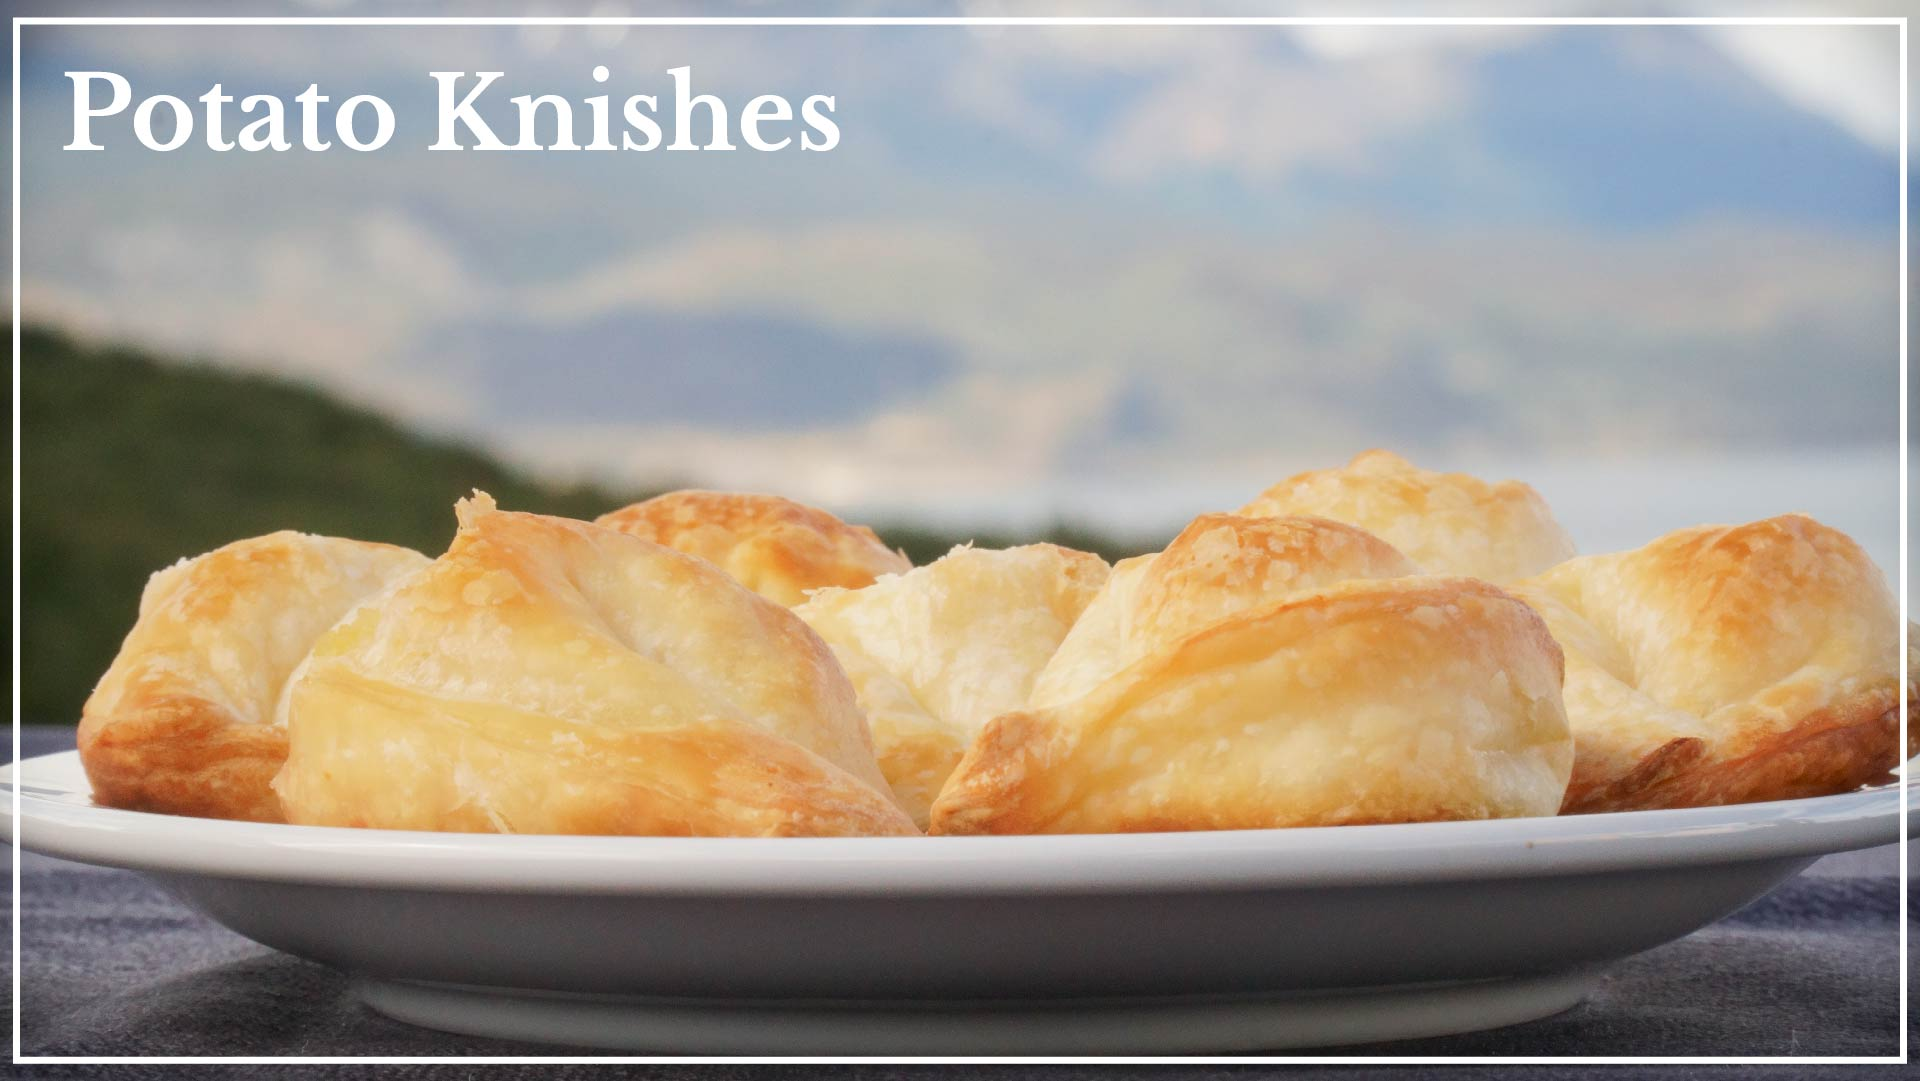 Potato Knishes - based on potatoes and onions